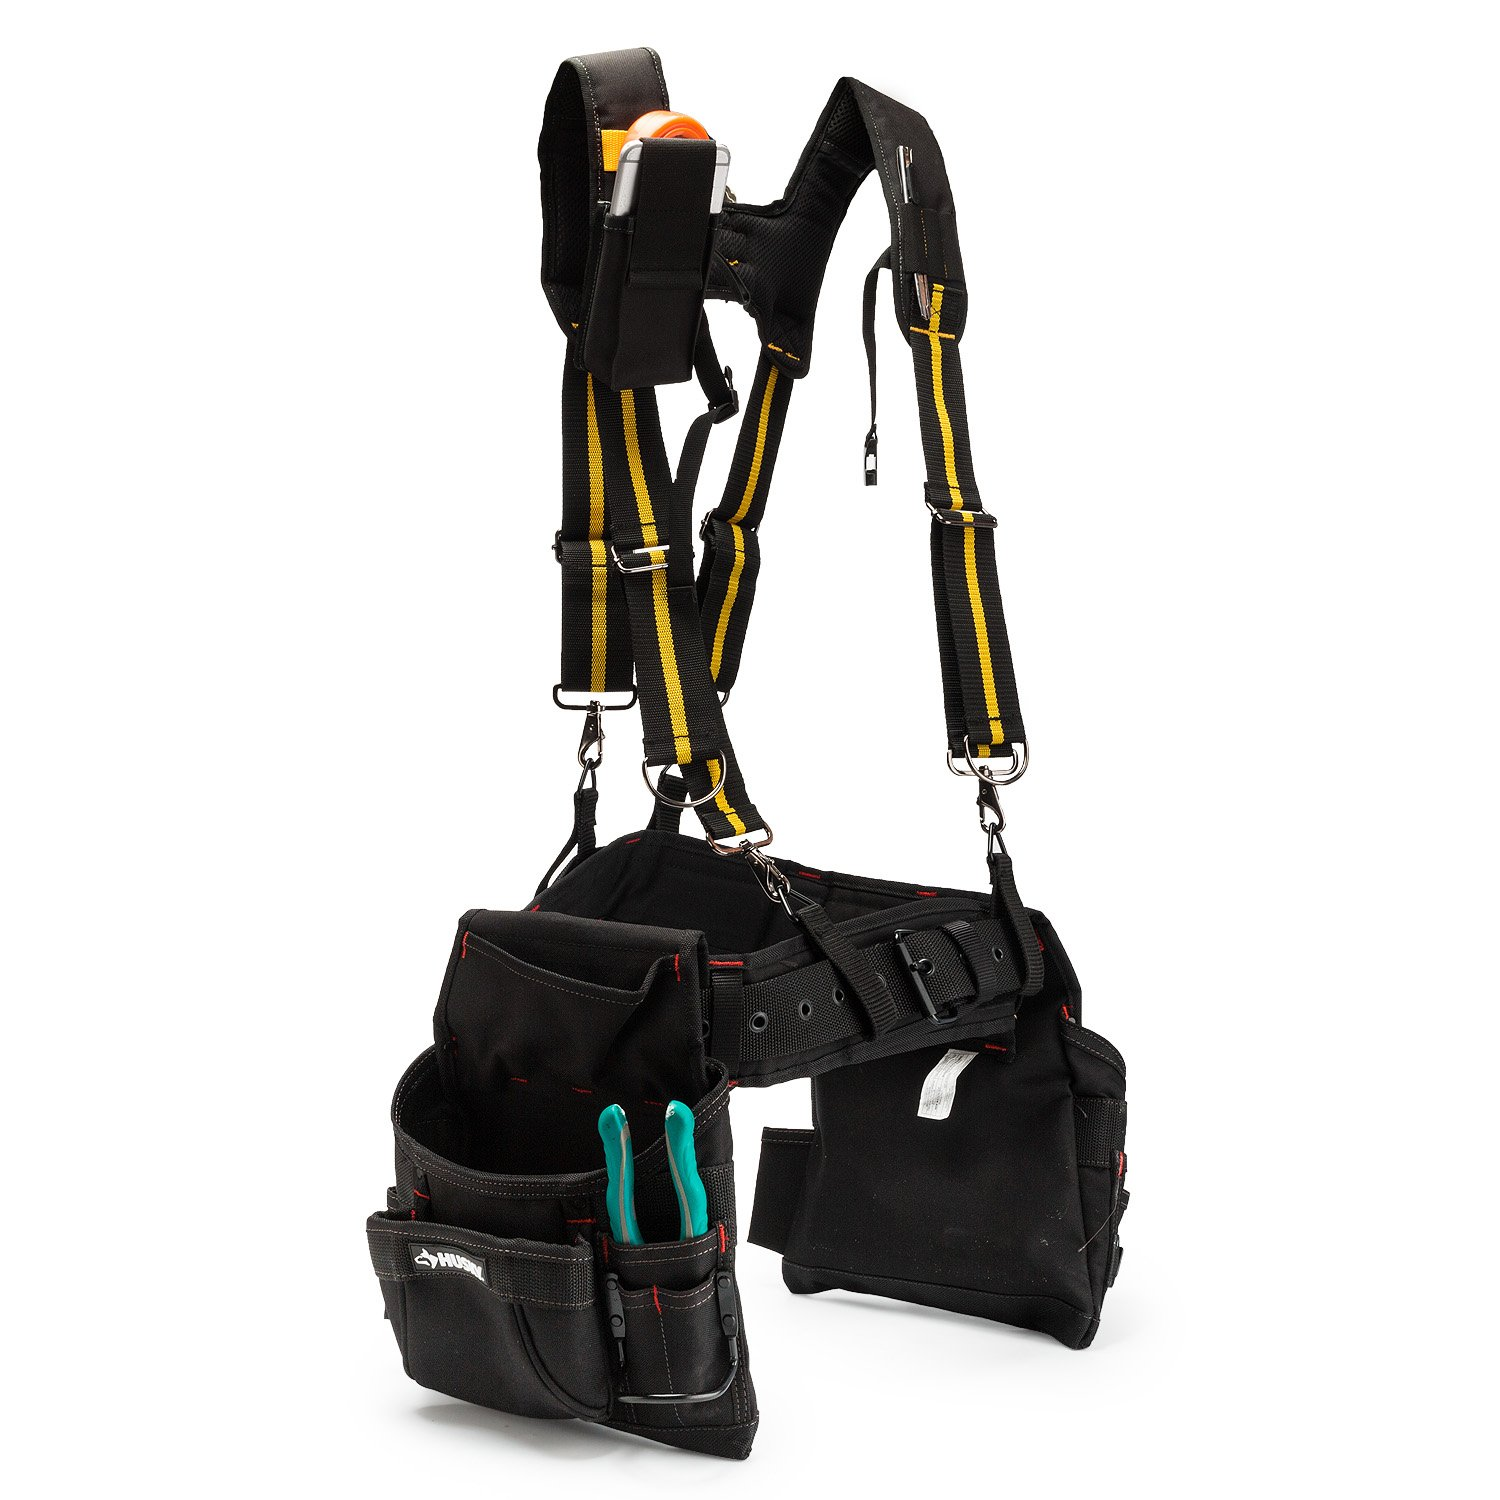 Tool Belt Suspenders|Padded Suspenders with movable phone holder Tape Holder Pencil holder,Flexible Adjustable Straps, suspenders Loop Attachments for carpenter electrician work Suspension Rig by Melo Tough (Image #8)